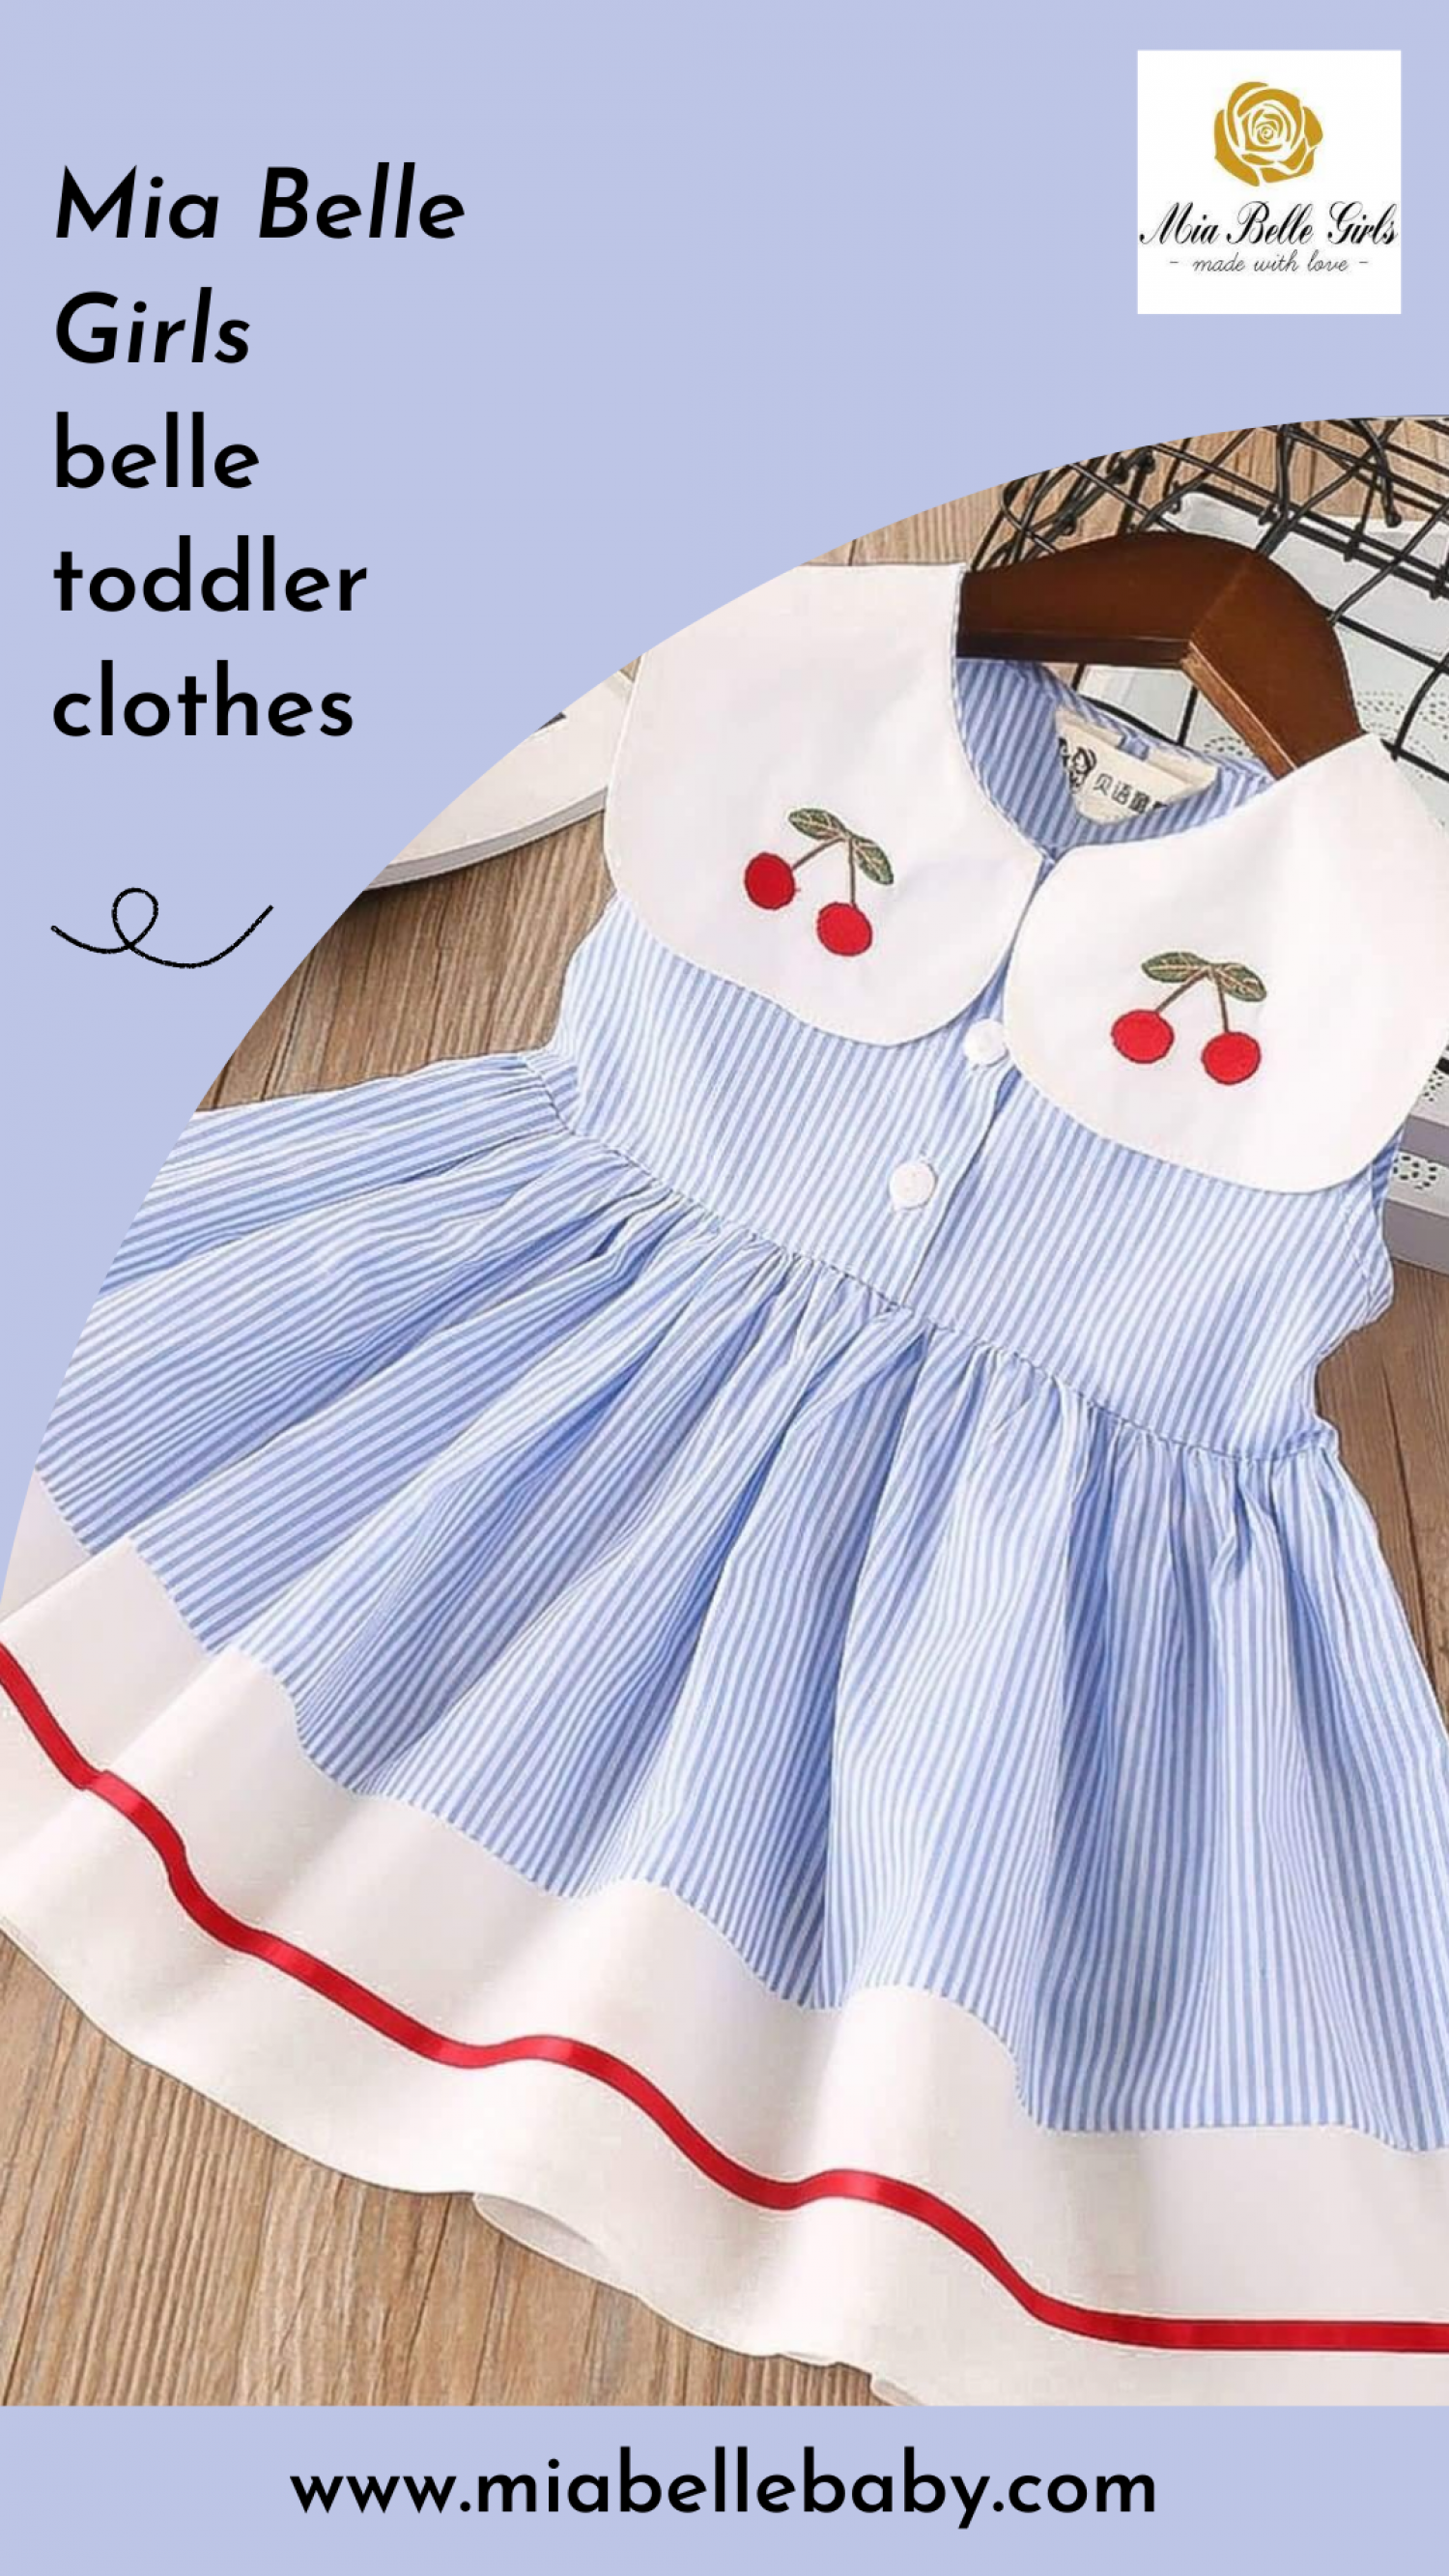 Belle toddler clothes - Mia Belle Girls Infographic